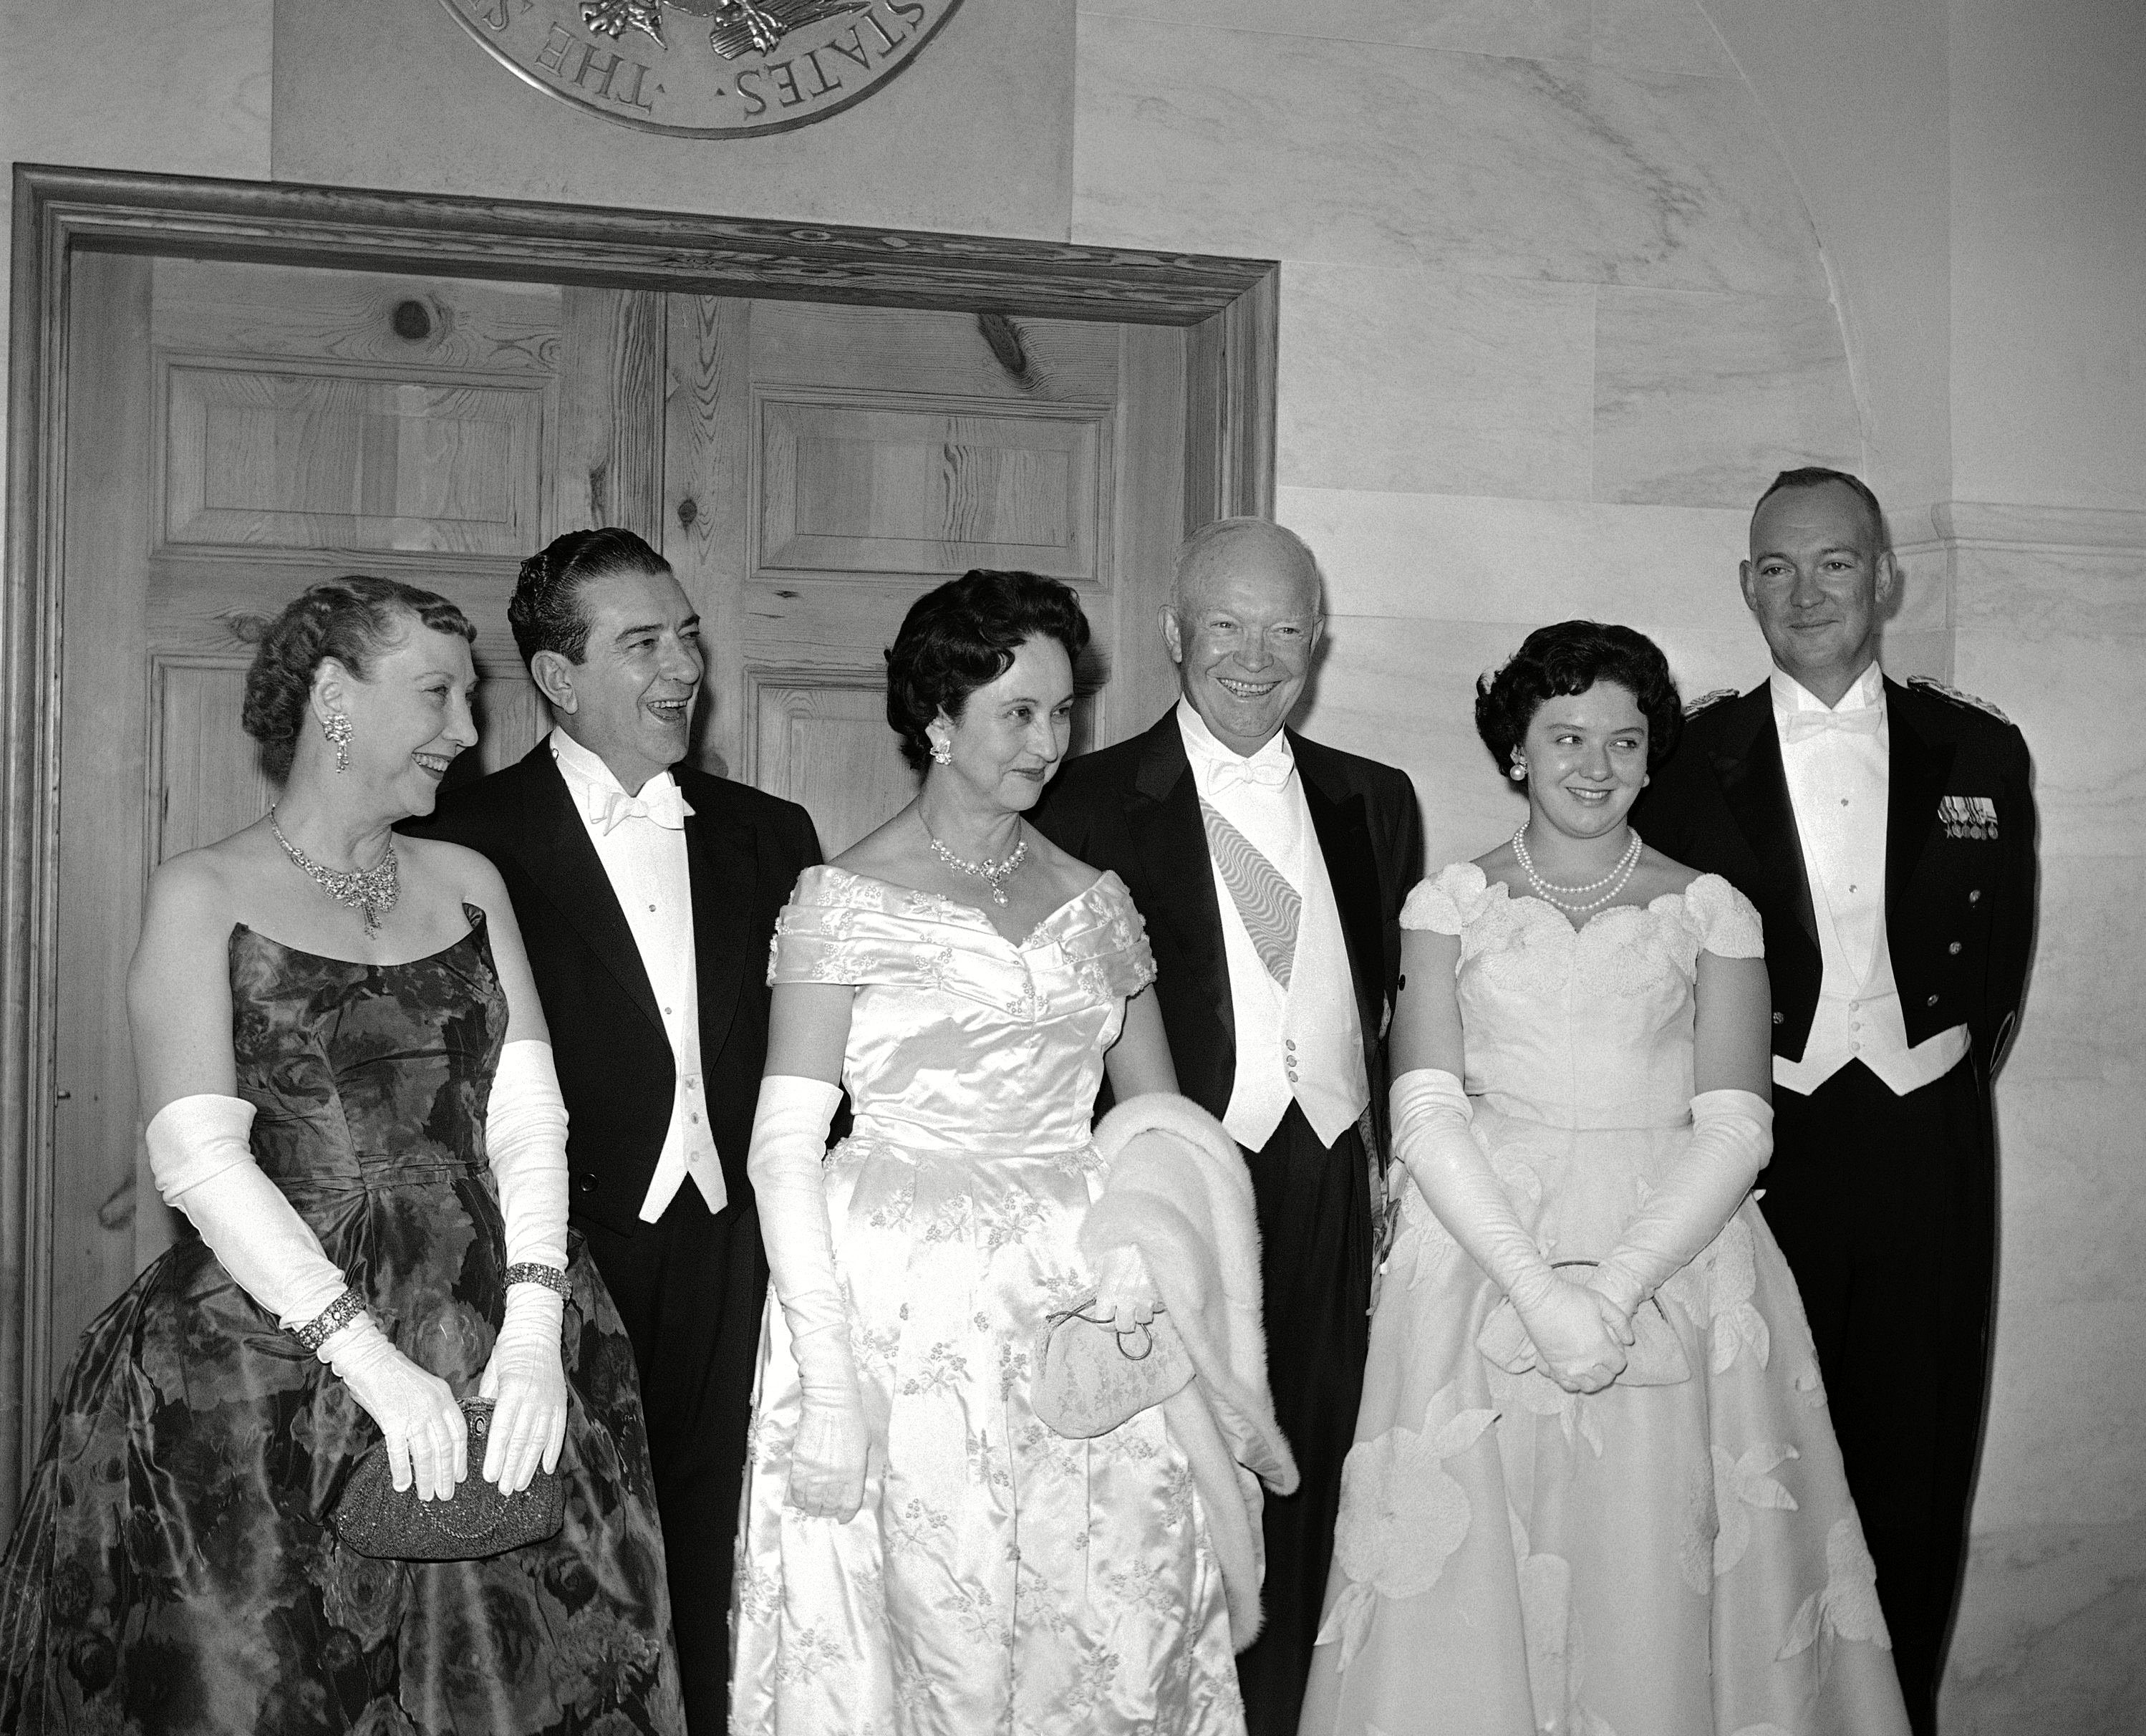 Mandatory Credit: Photo by William Smith/AP/Shutterstock (5967268a) Dwight Eisenhower, Adolfo Lopez Mateos, John Eisenhower Mexican President Adolfo Lopez Mateos, his wife and daughter, Eva, who arrived in Washington, on on an official visit, pose with the Eisenhower's prior to a formal dinner the same evening in the White House. Left to right, Mrs. Eisenhower, President Lopez Mateos and his wife, President Eisenhower, Miss Eva Lopez Mateos and Maj. John Eisenhower, son of President Adolfo Lopez Mateos with Dwight Eisenhower and John Eisenhower, Washington, USA